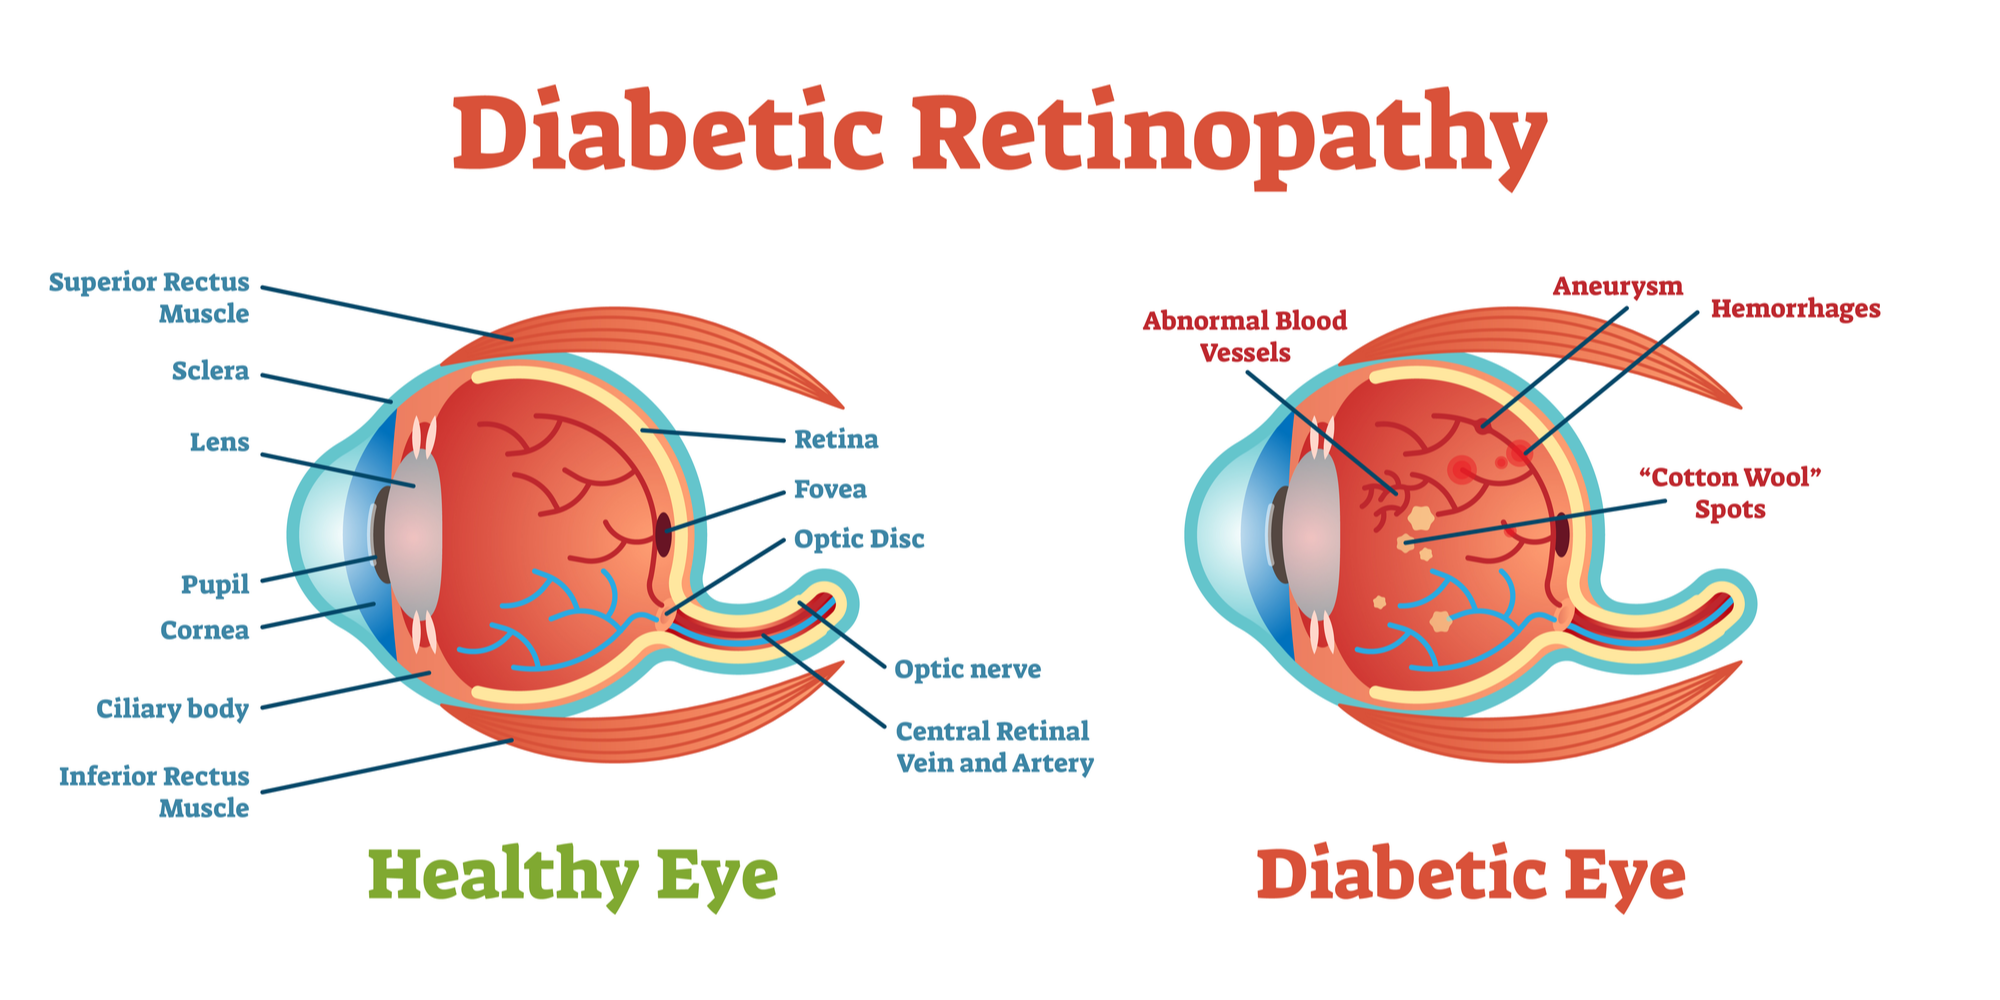 How to Prevent Vision Loss Related to Diabetic Retinopathy